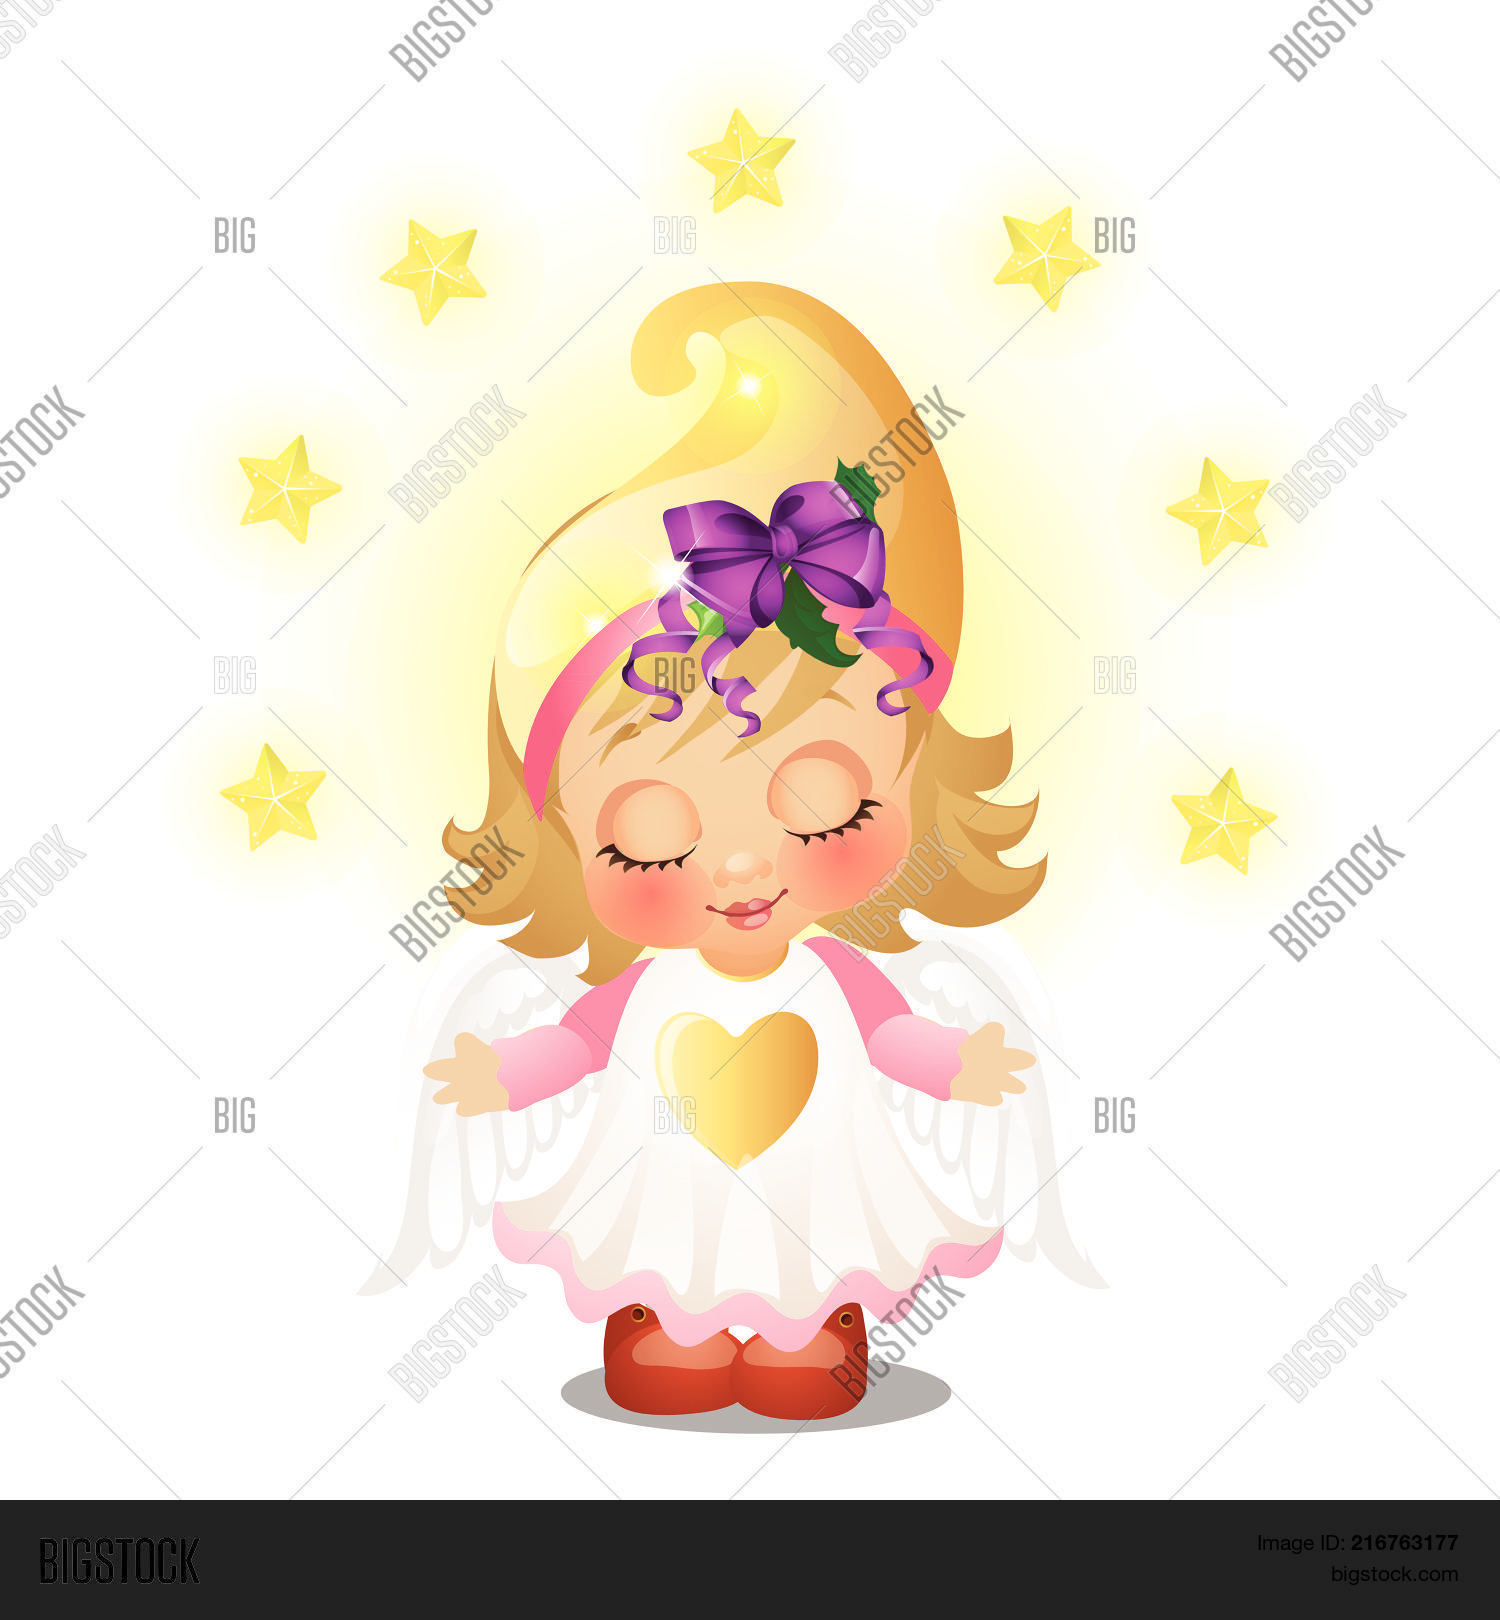 Cute animated girl with angel wings smiling with eyes closed isolated on white background sketch